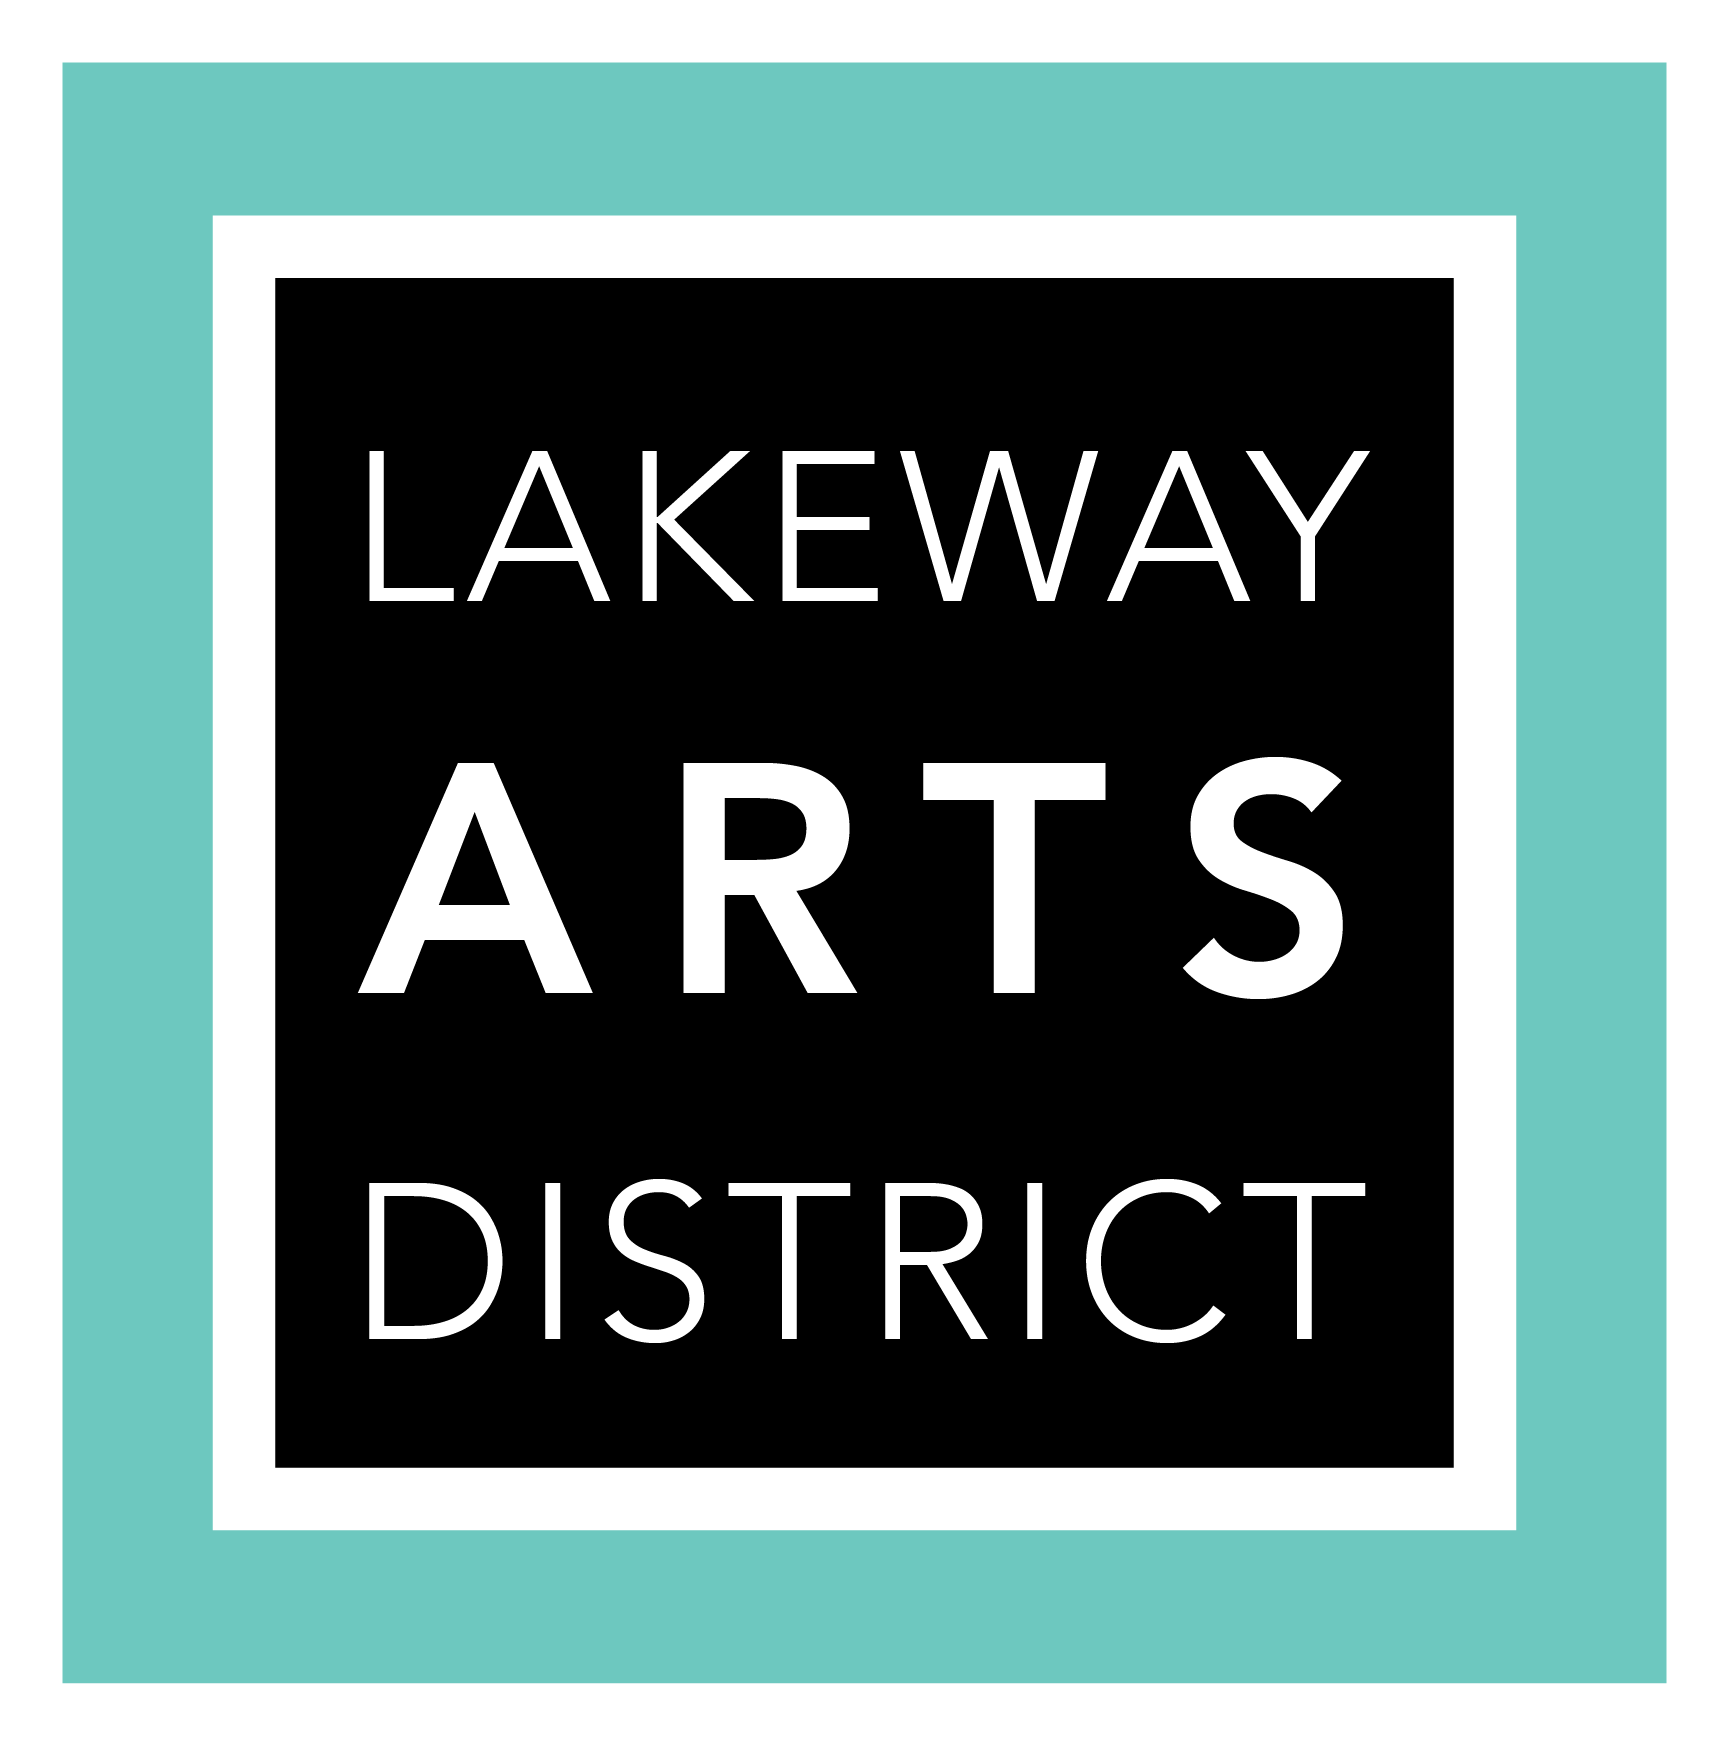 Lakeway Arts District